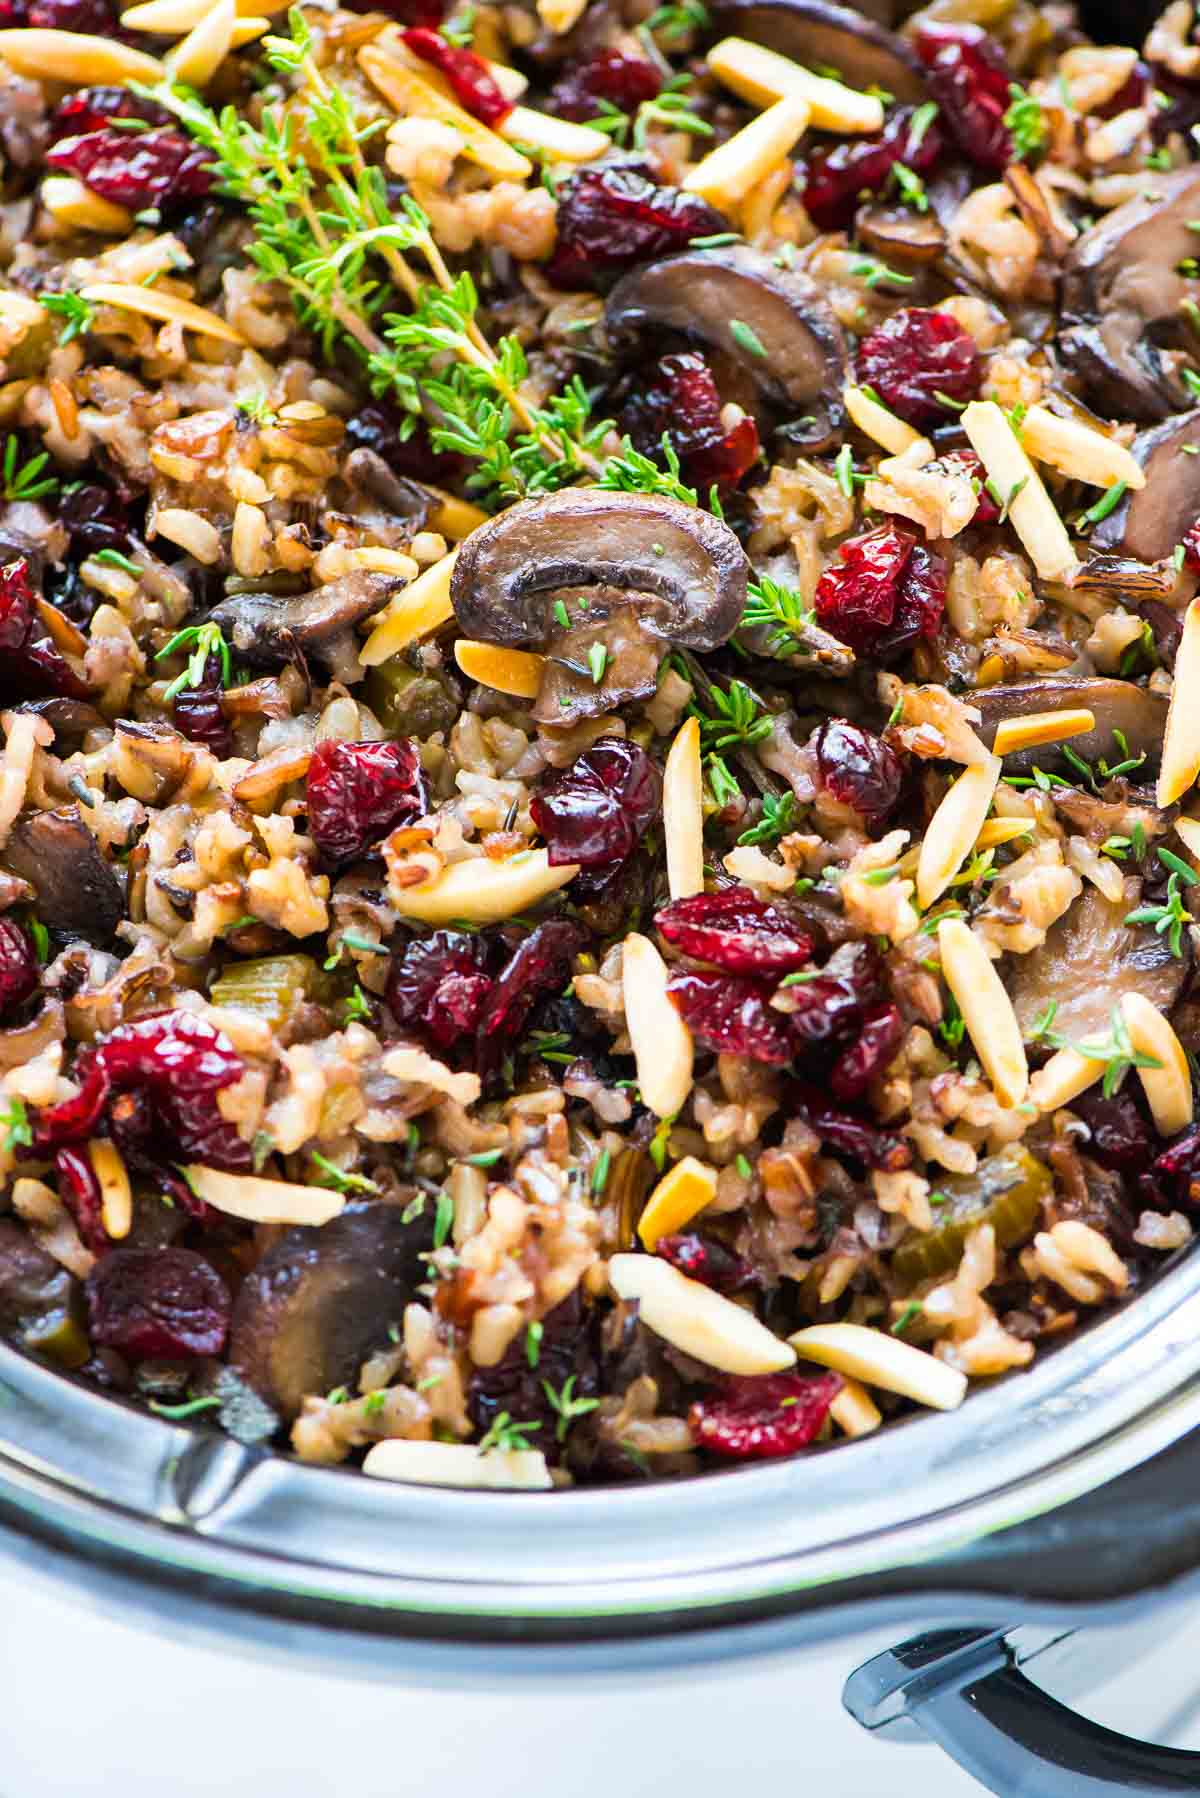 Mushrooms, cranberries, herbs, and almonds in a slow cooker